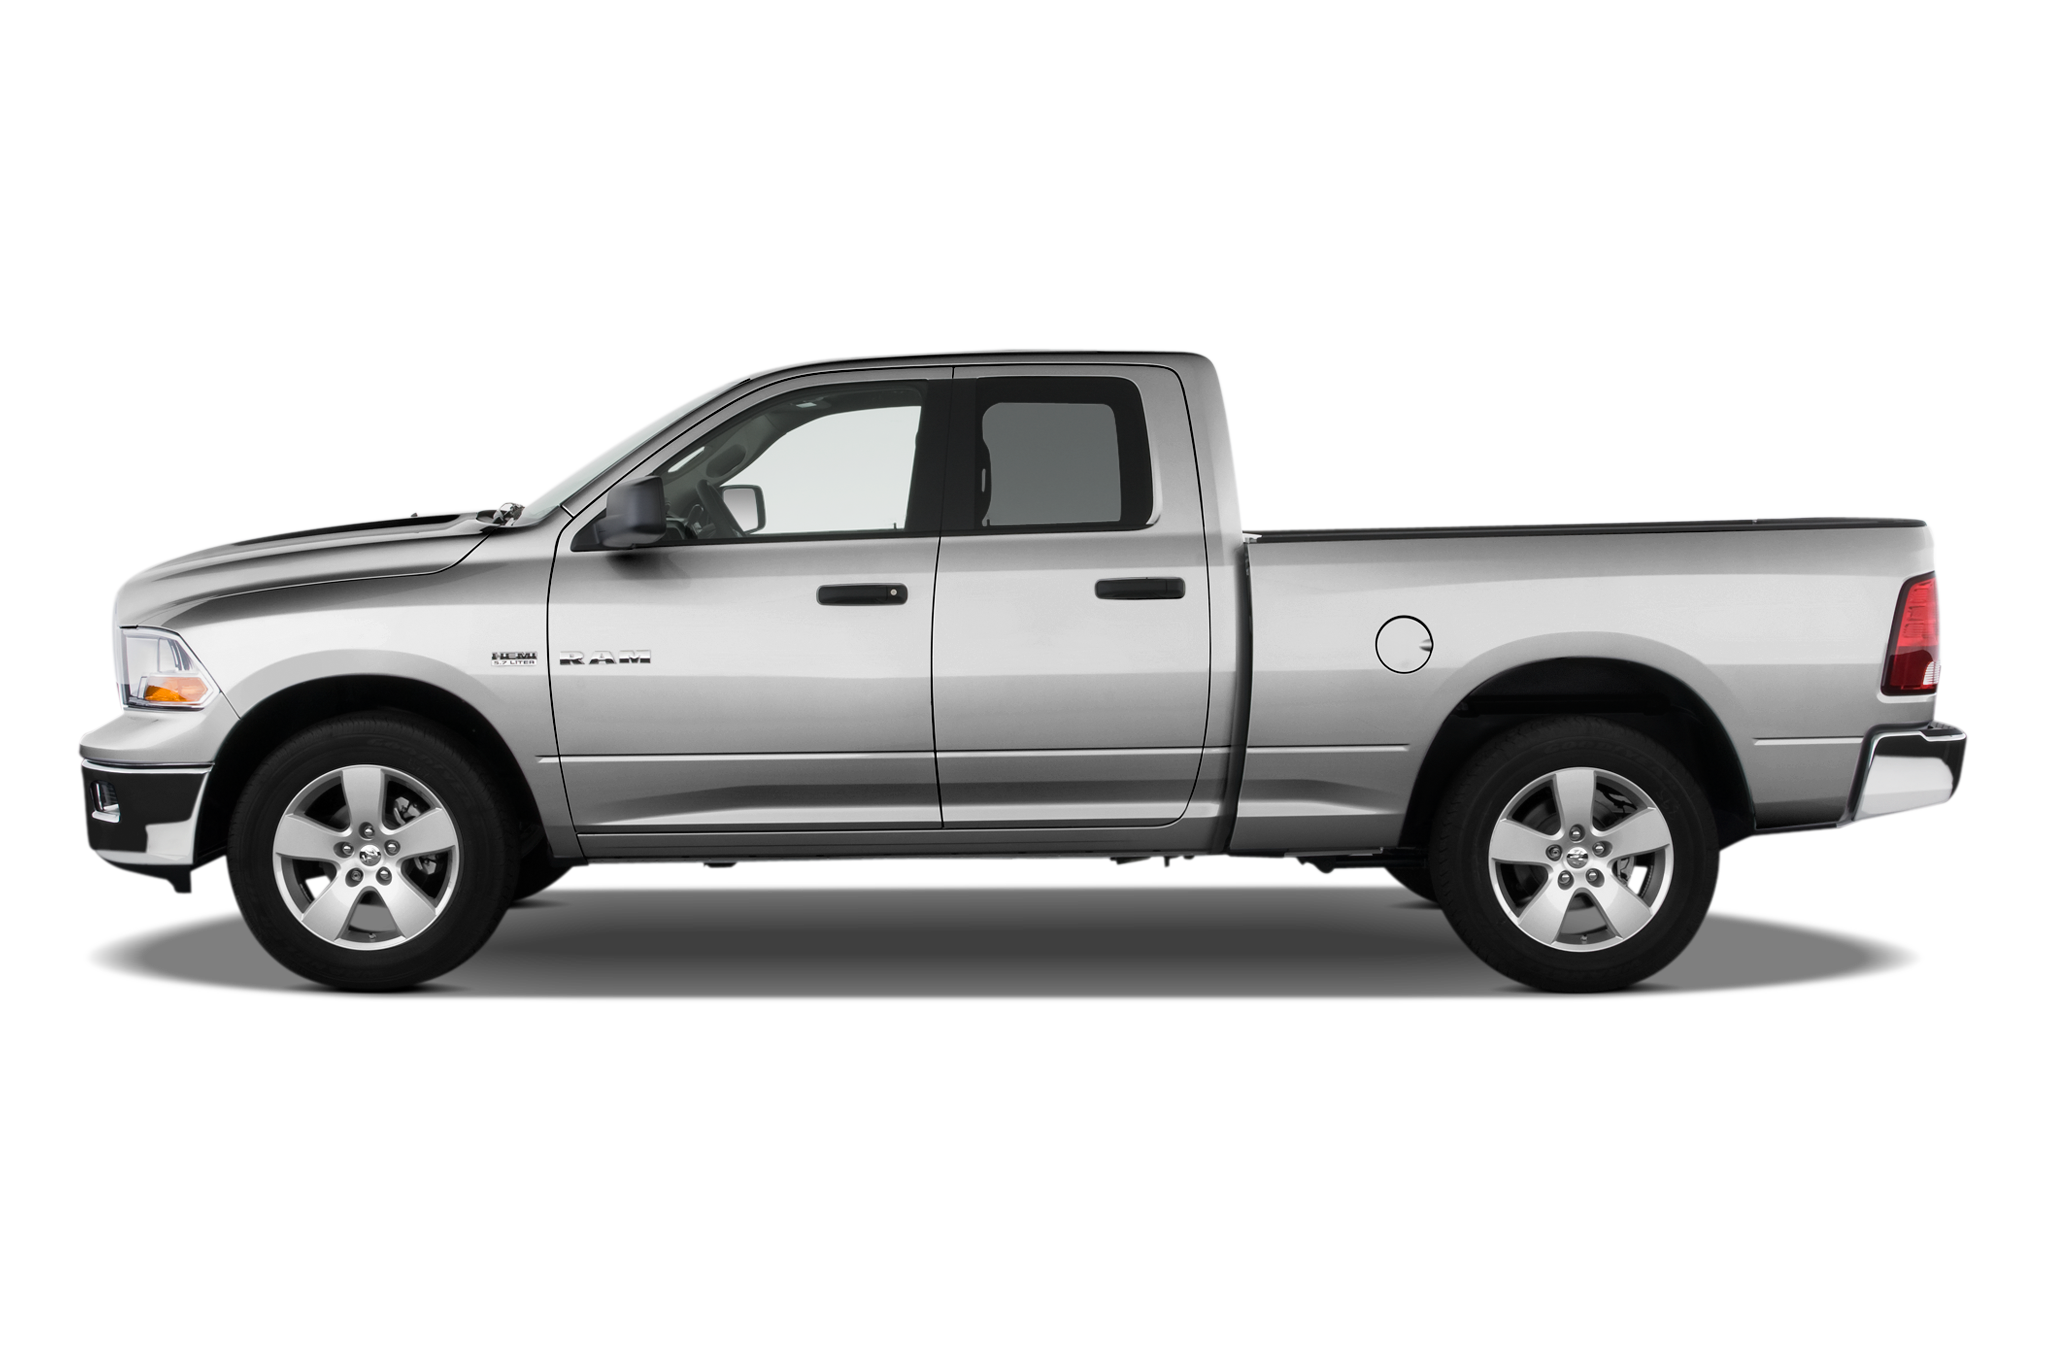 image cab pickup quad ram truck auction so dodge for item